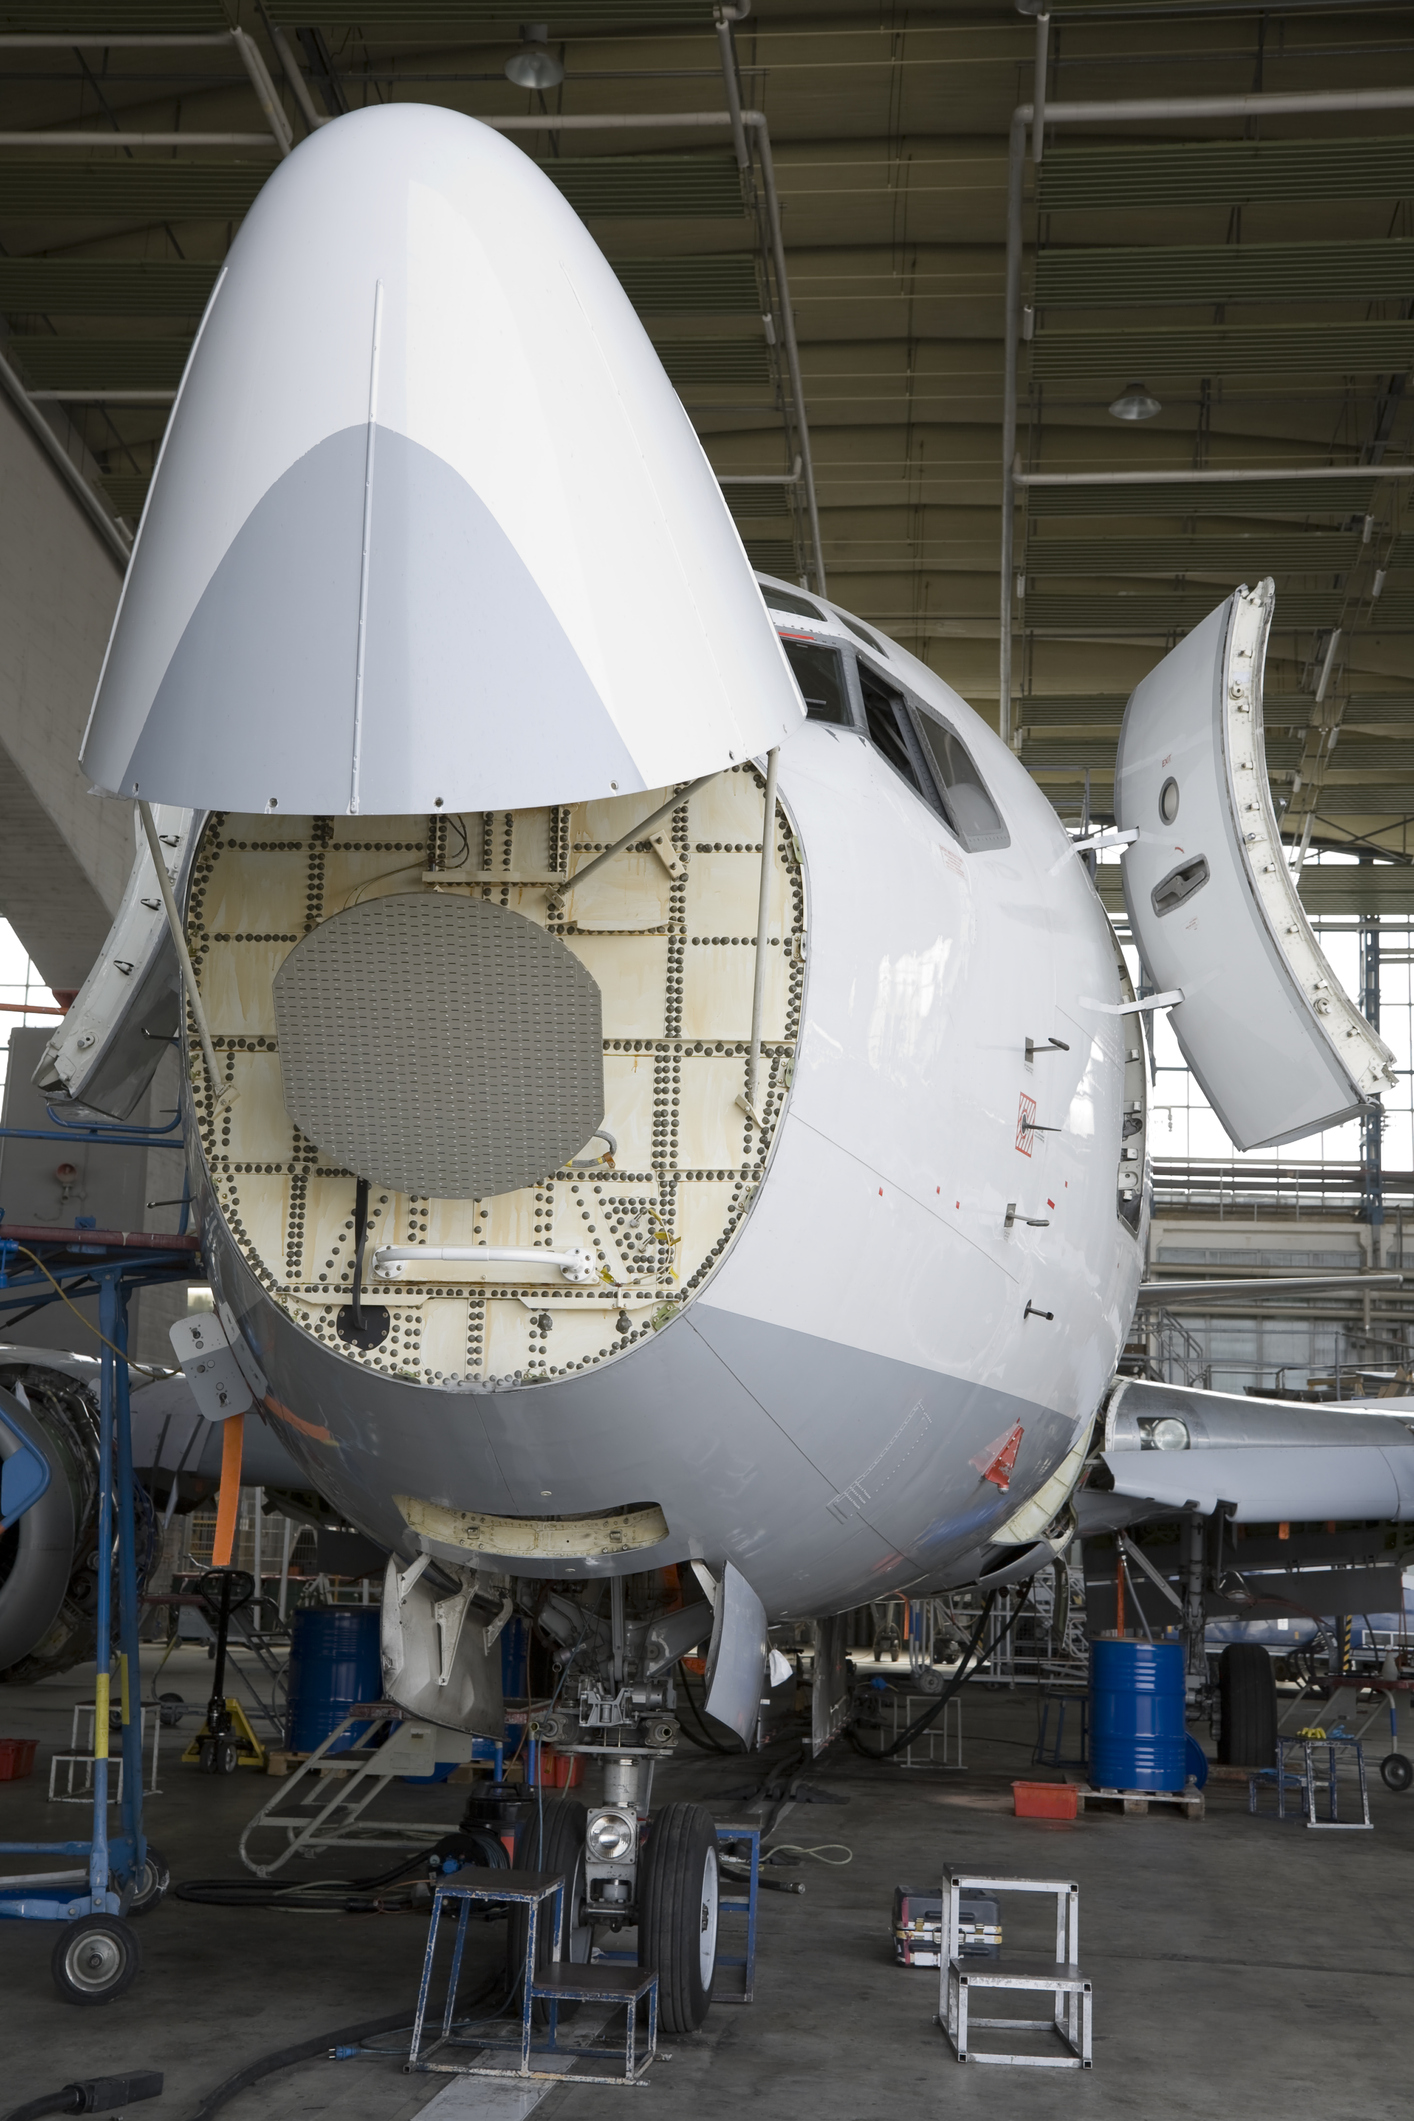 Commercial Airplane Maintenance Check in Hangar